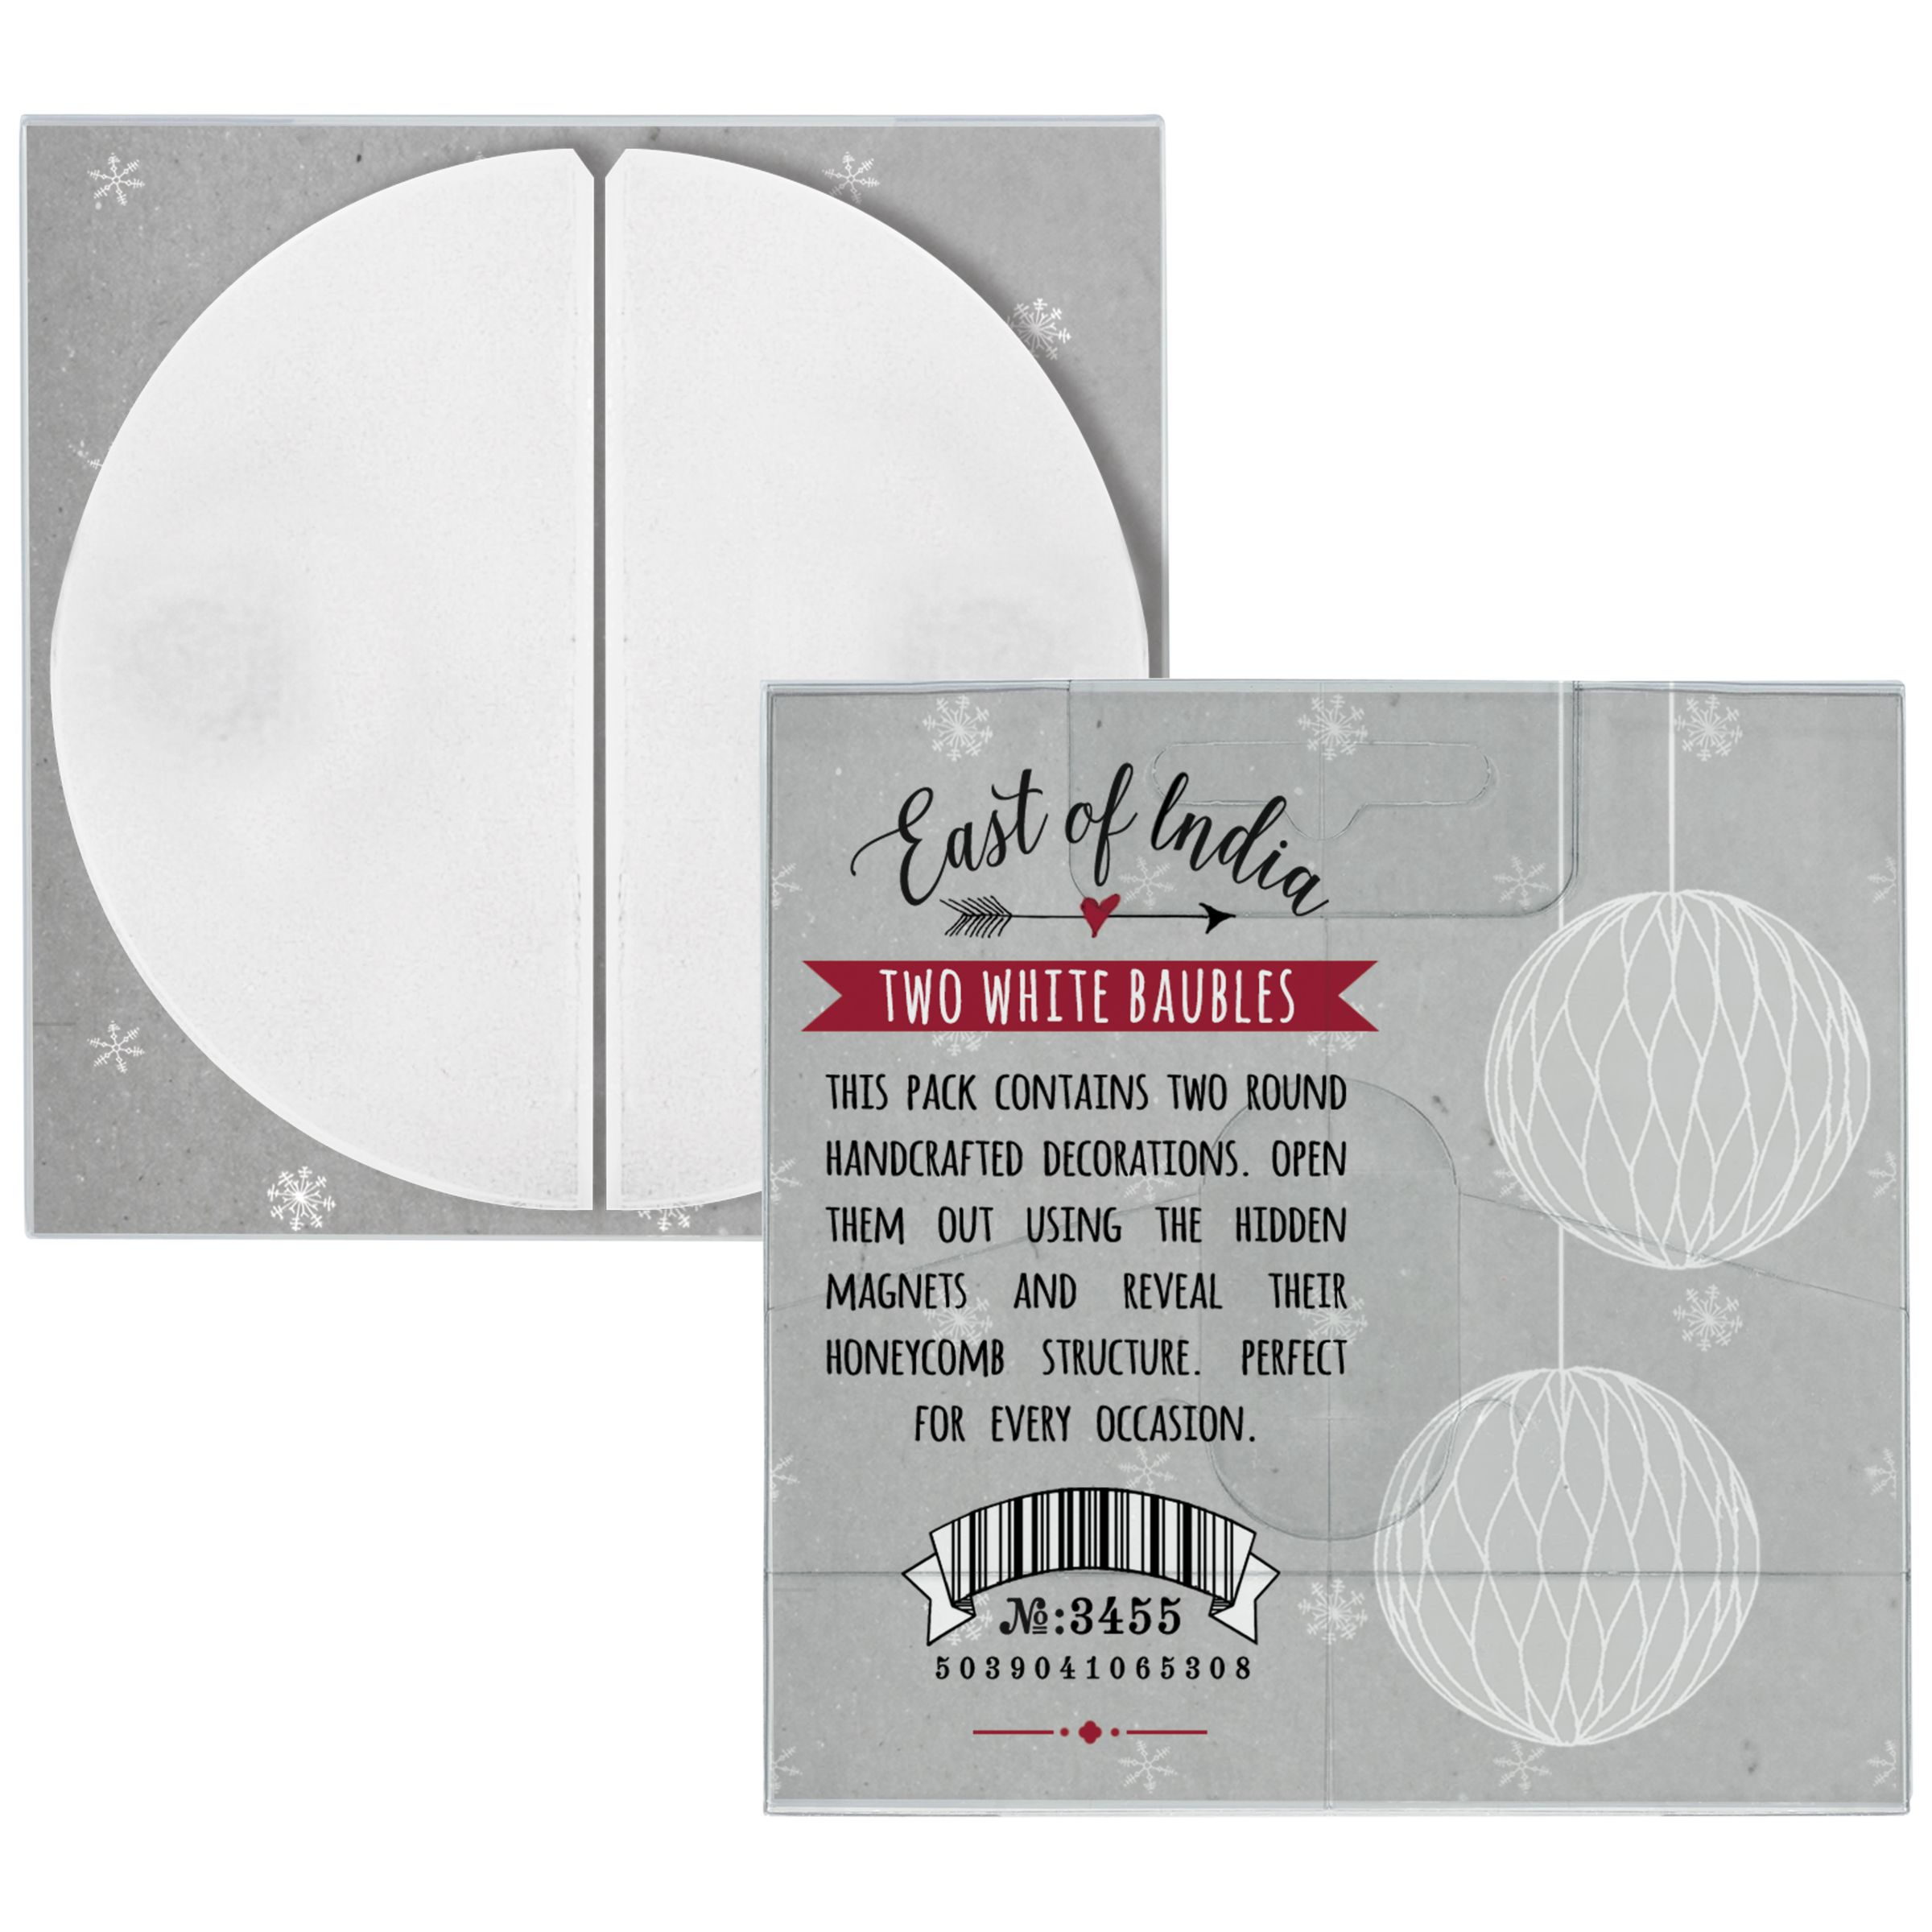 East of India East of India Paper Baubles, Pack of 2, White